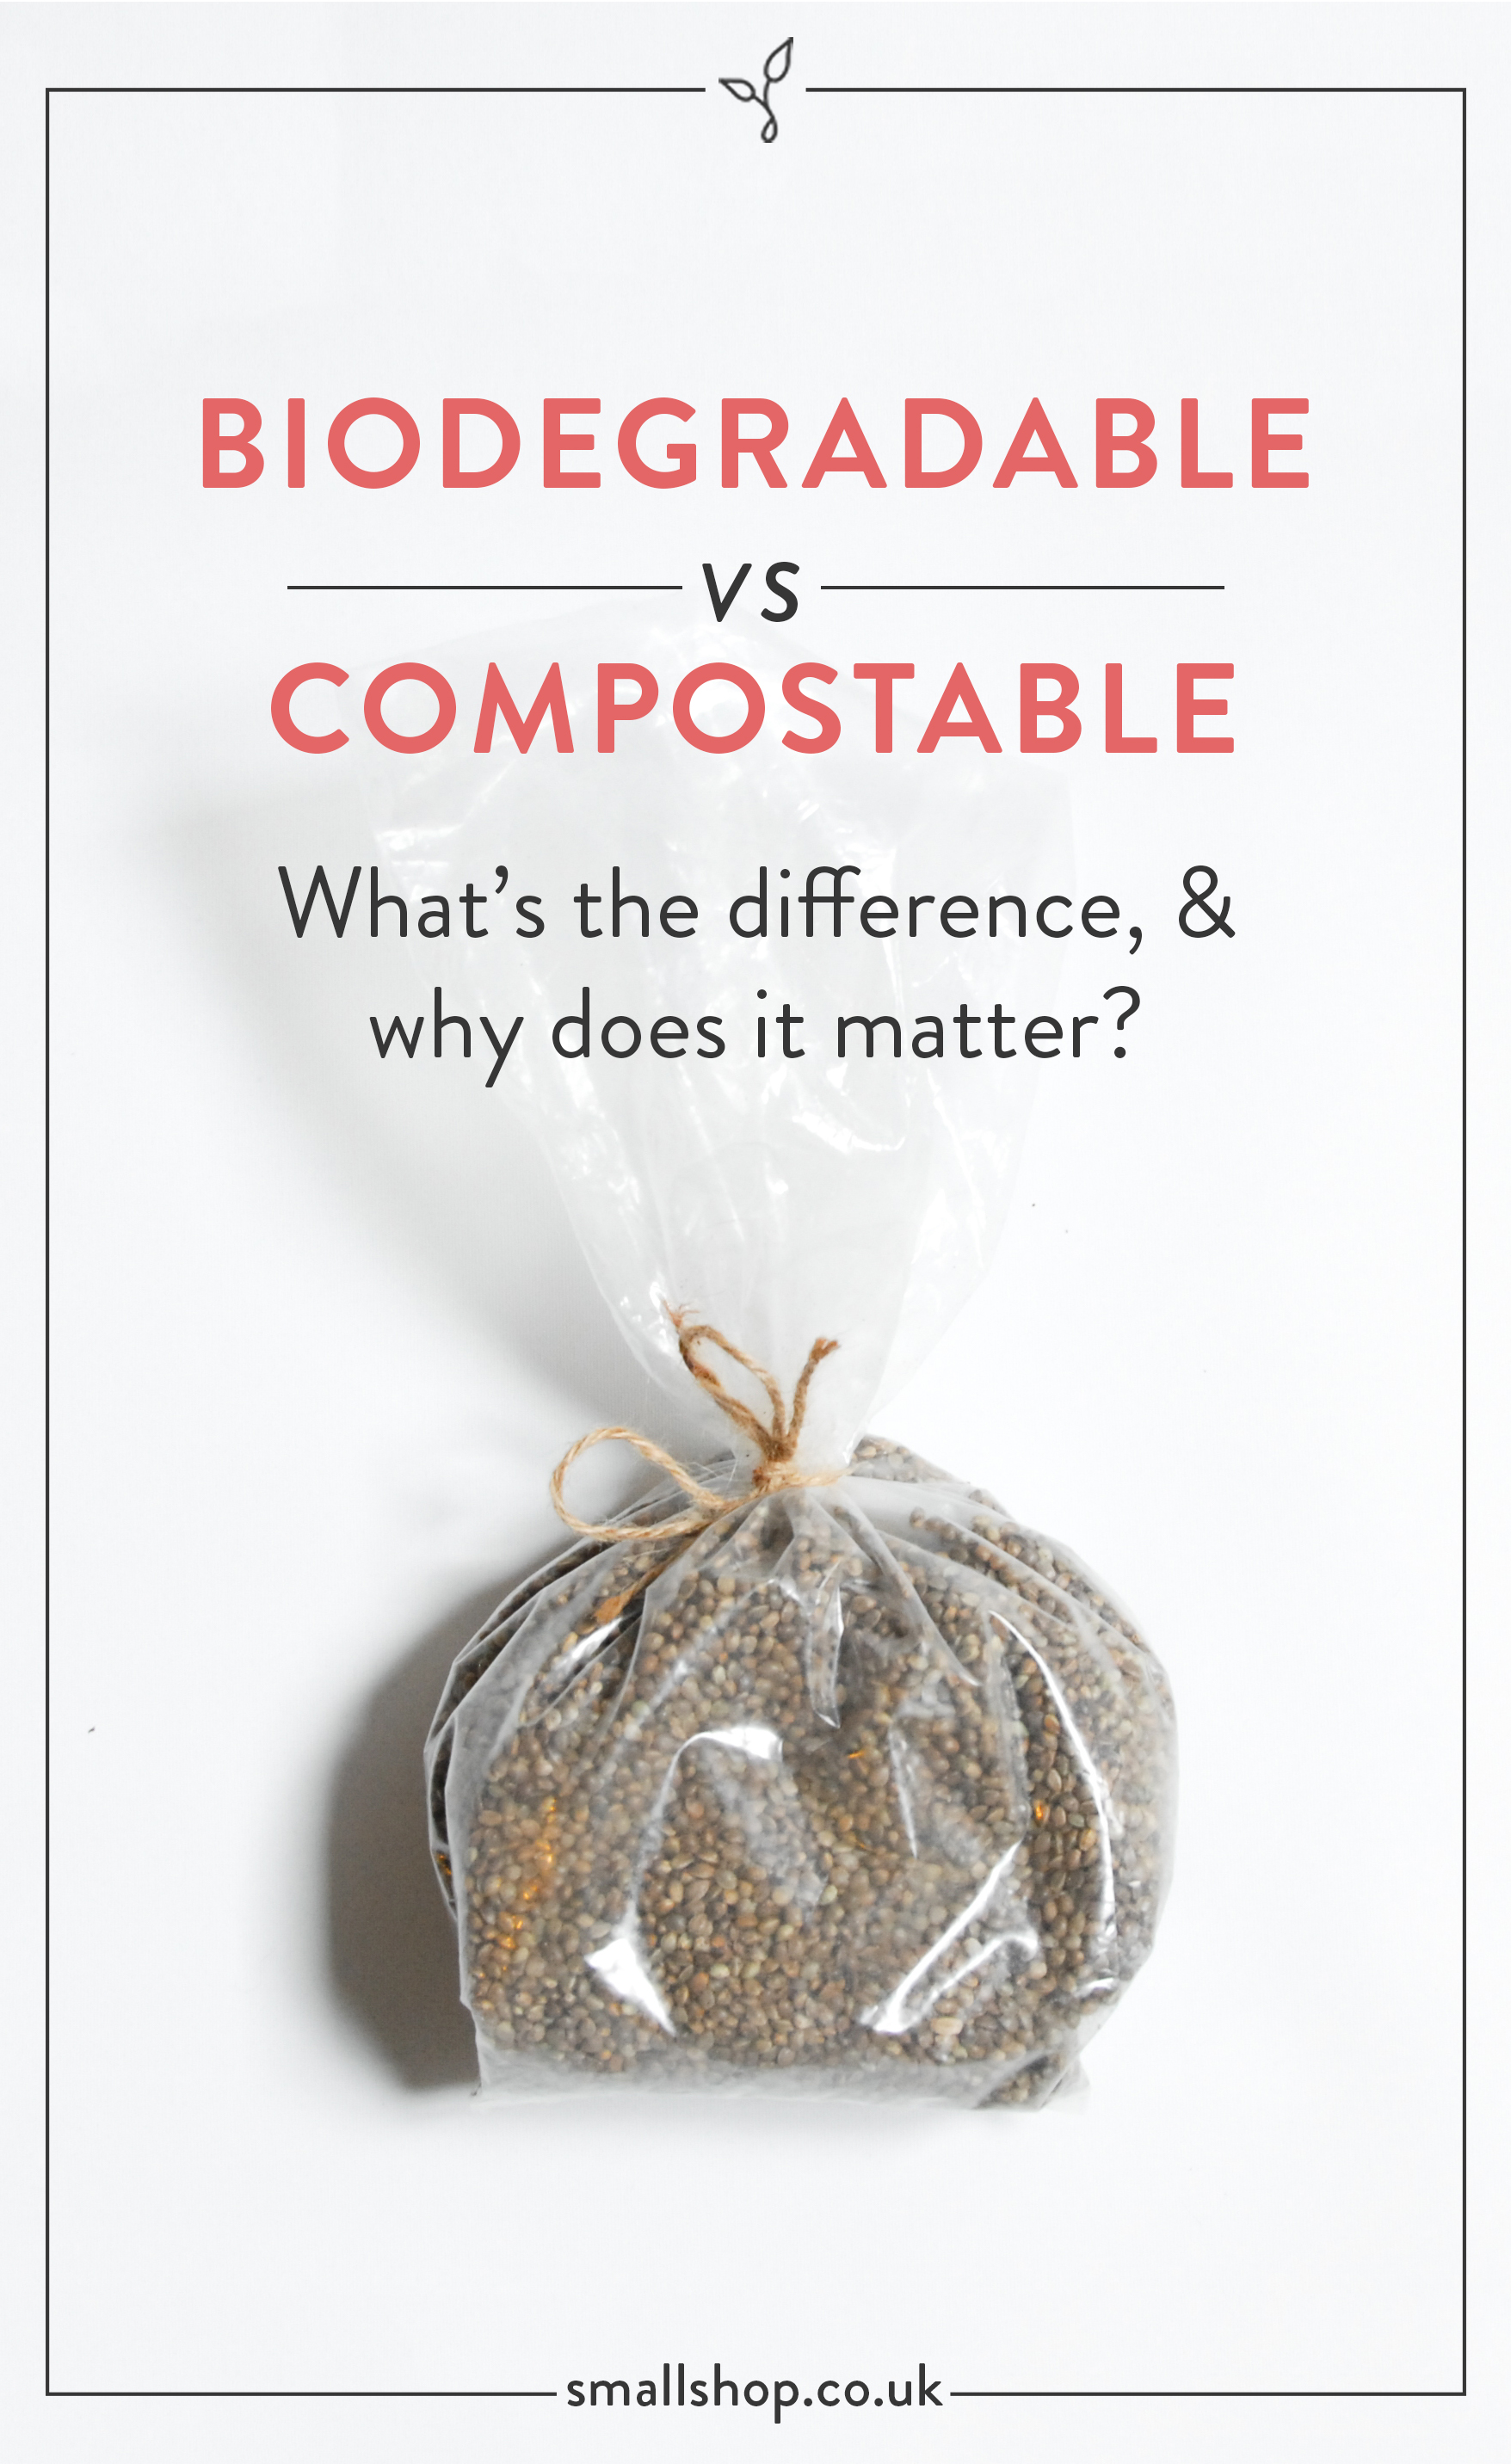 Biodegradable vs. Compostable - What's the difference and why does it matter